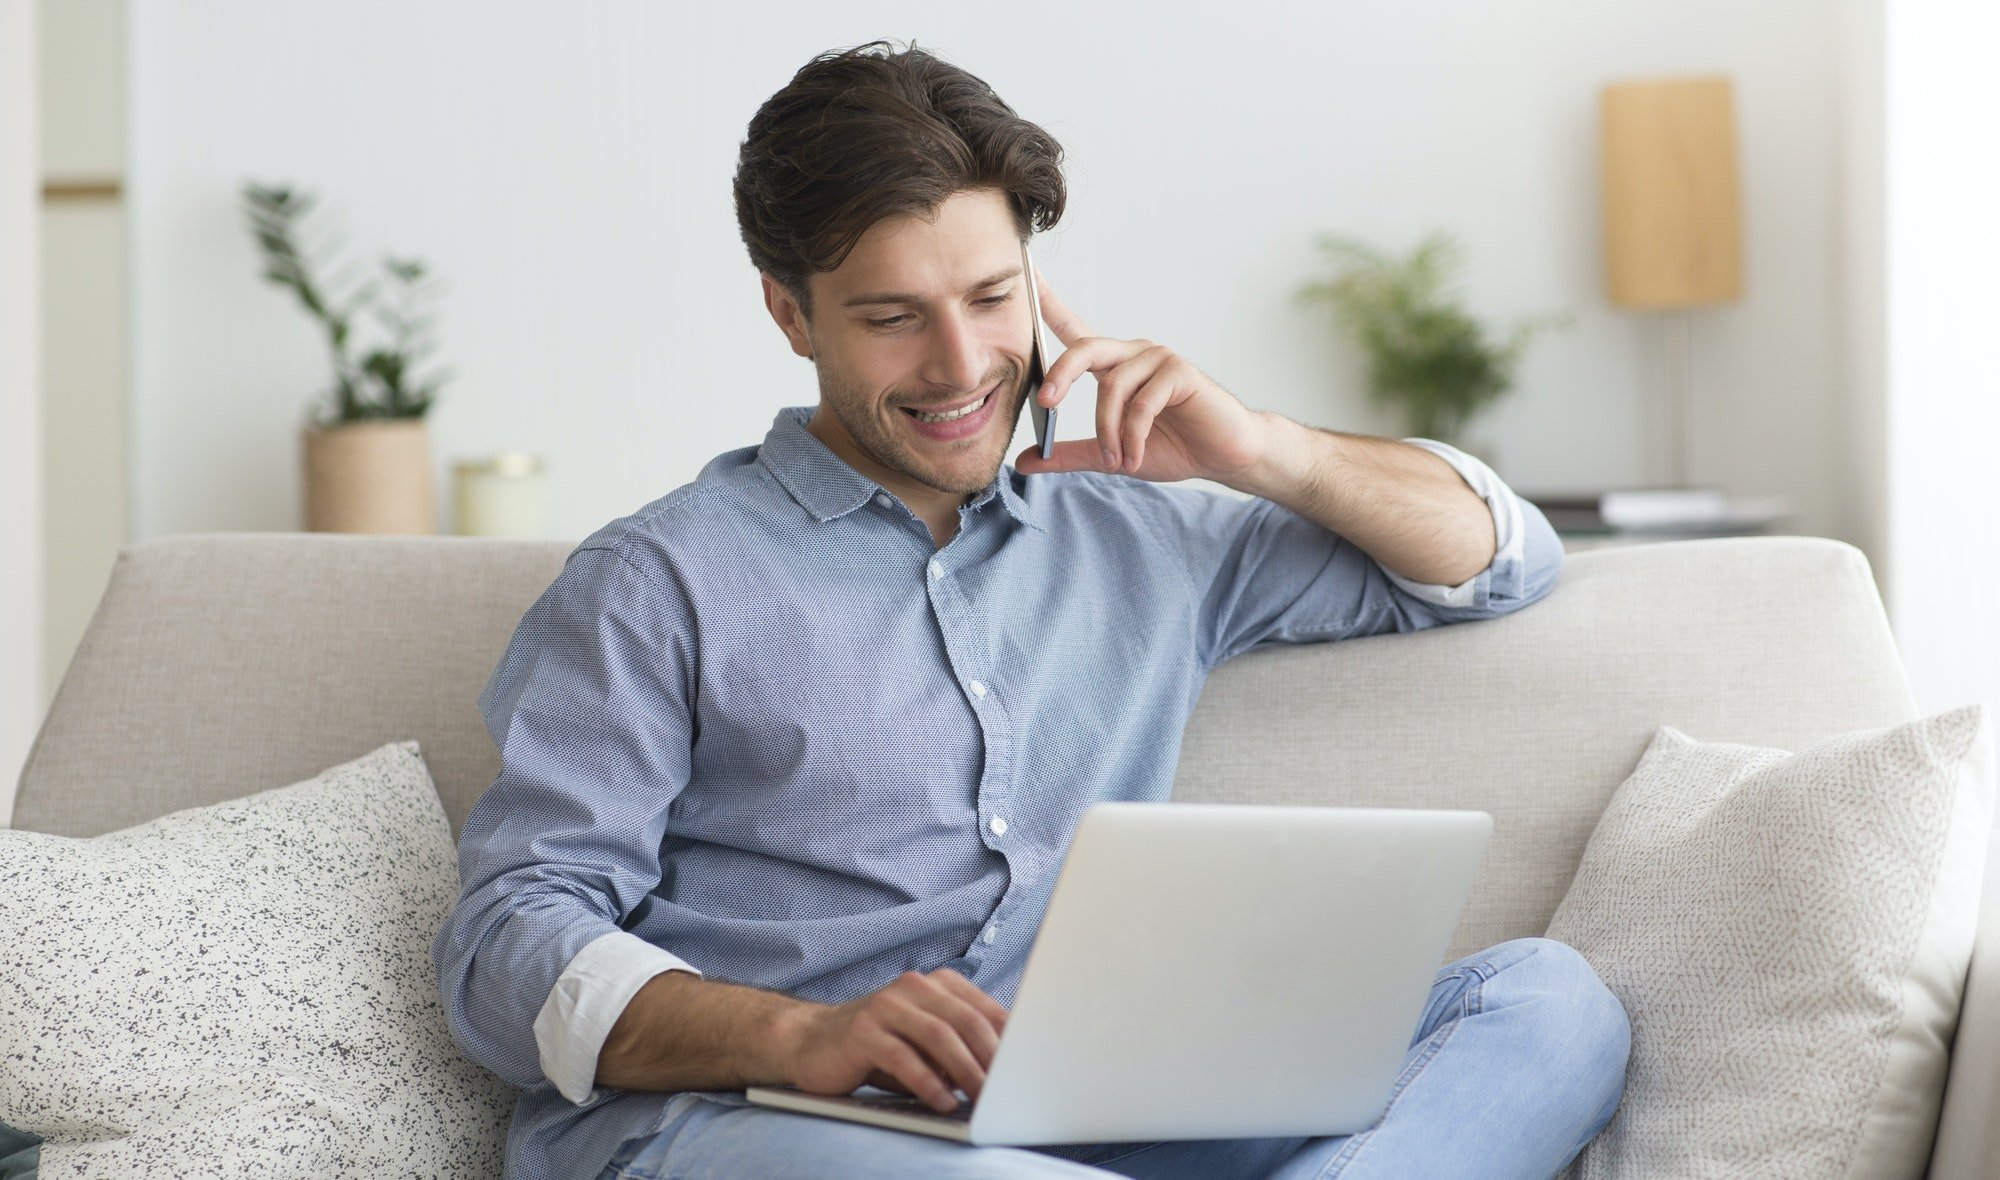 Cheerful Man Talking On Phone Sitting On Sofa Indoor